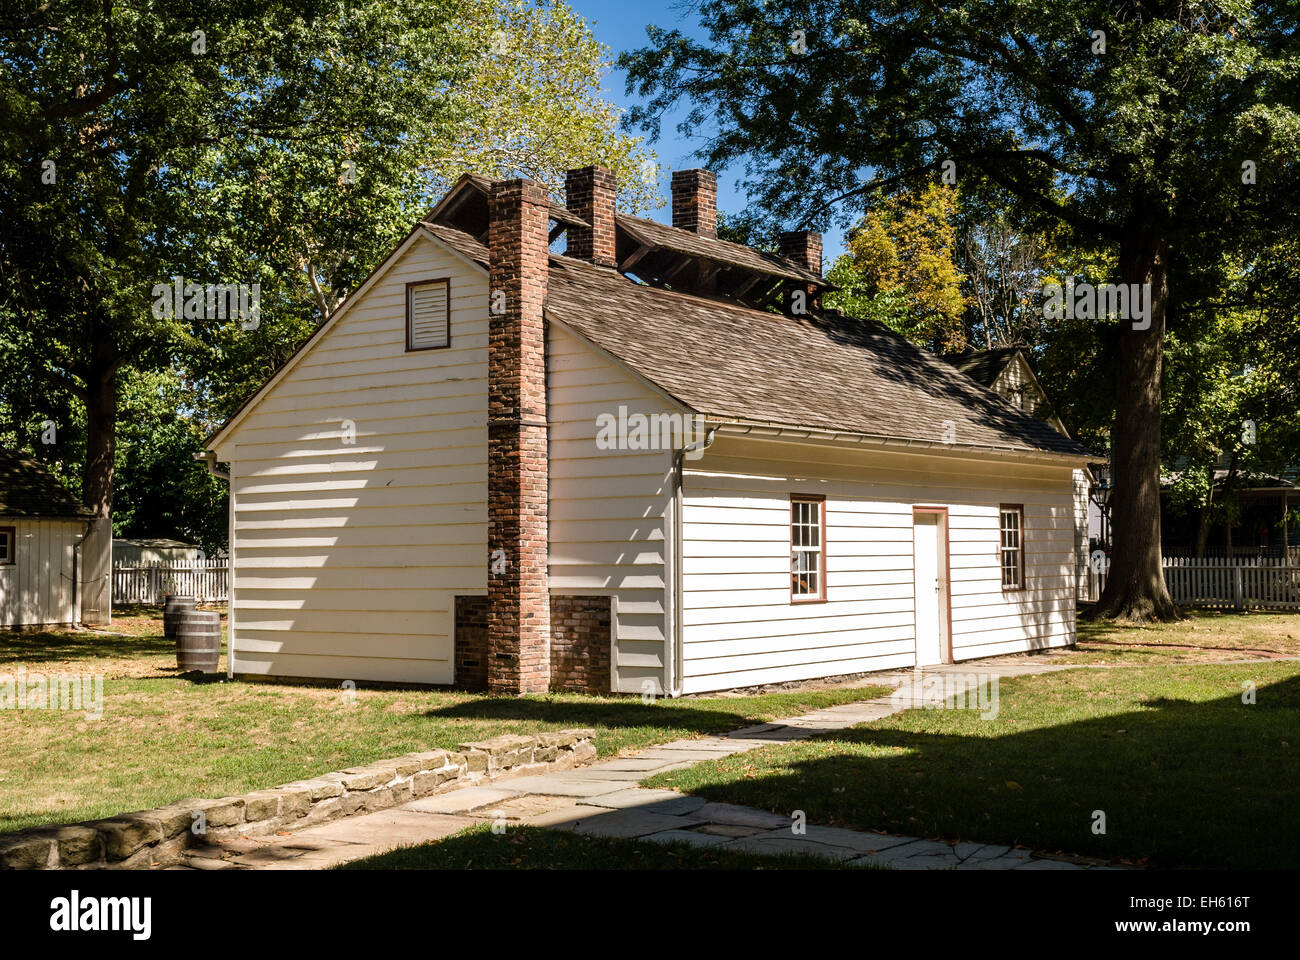 Pennsylvania German Stockfotos & Pennsylvania German Bilder - Alamy